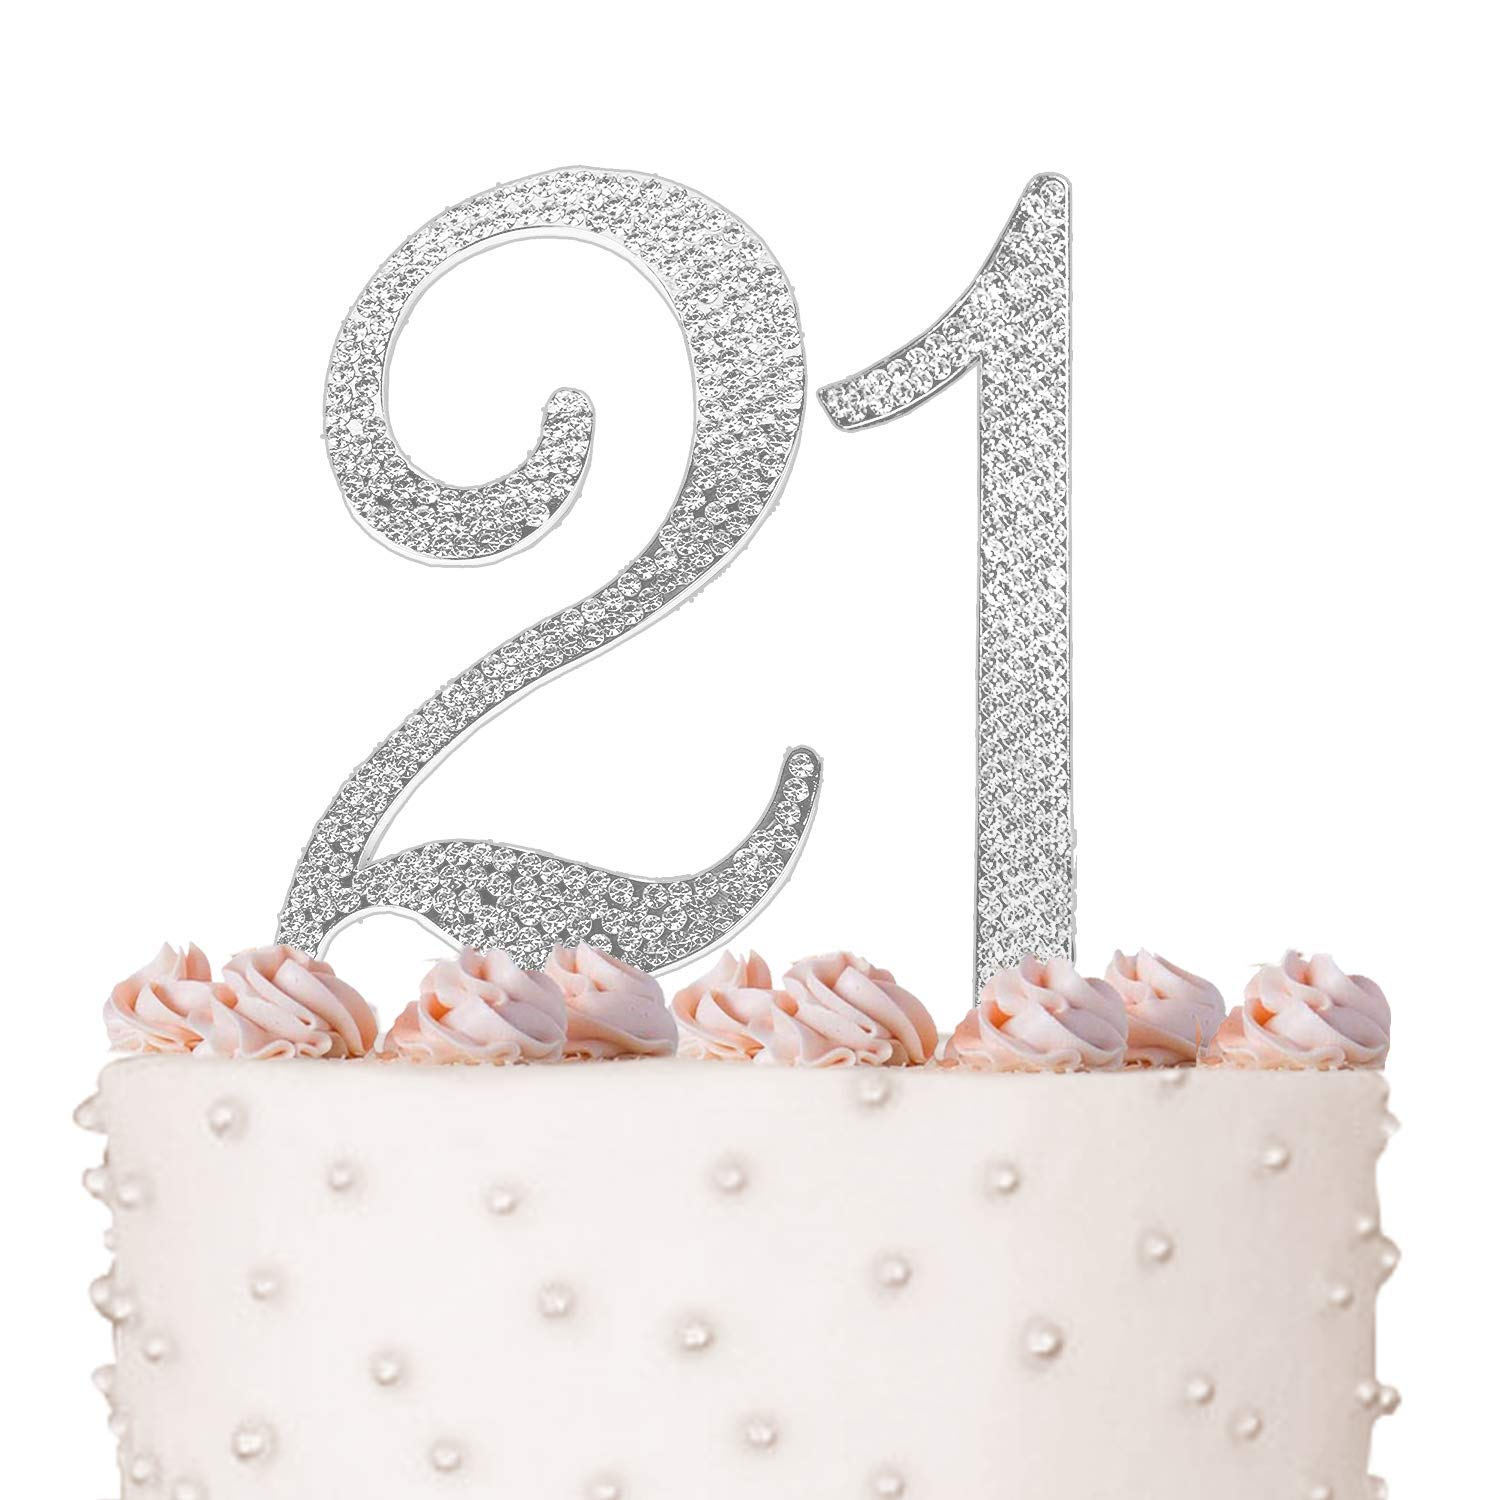 21 Cake Topper 21st Happy Birthday Anniversary Crystal Rhinestones On Silver Metal Party Decorations Favors